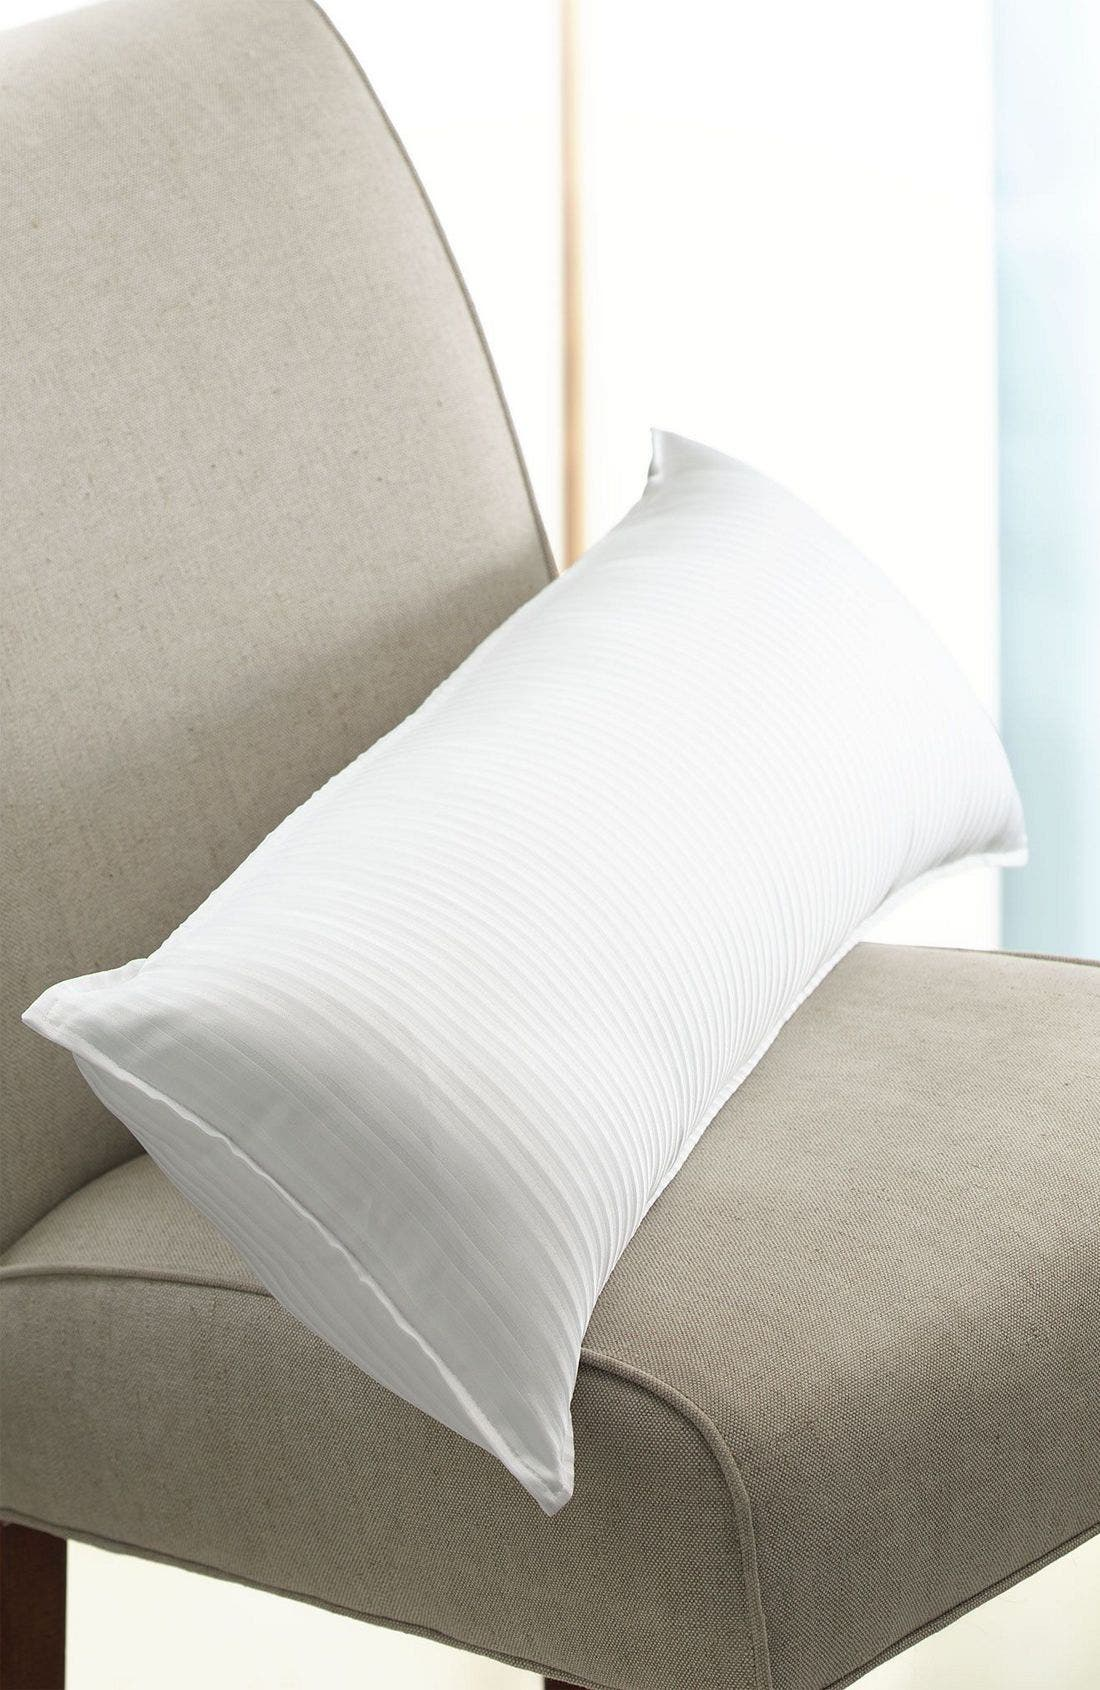 Pillow & Cover,                         Main,                         color, White